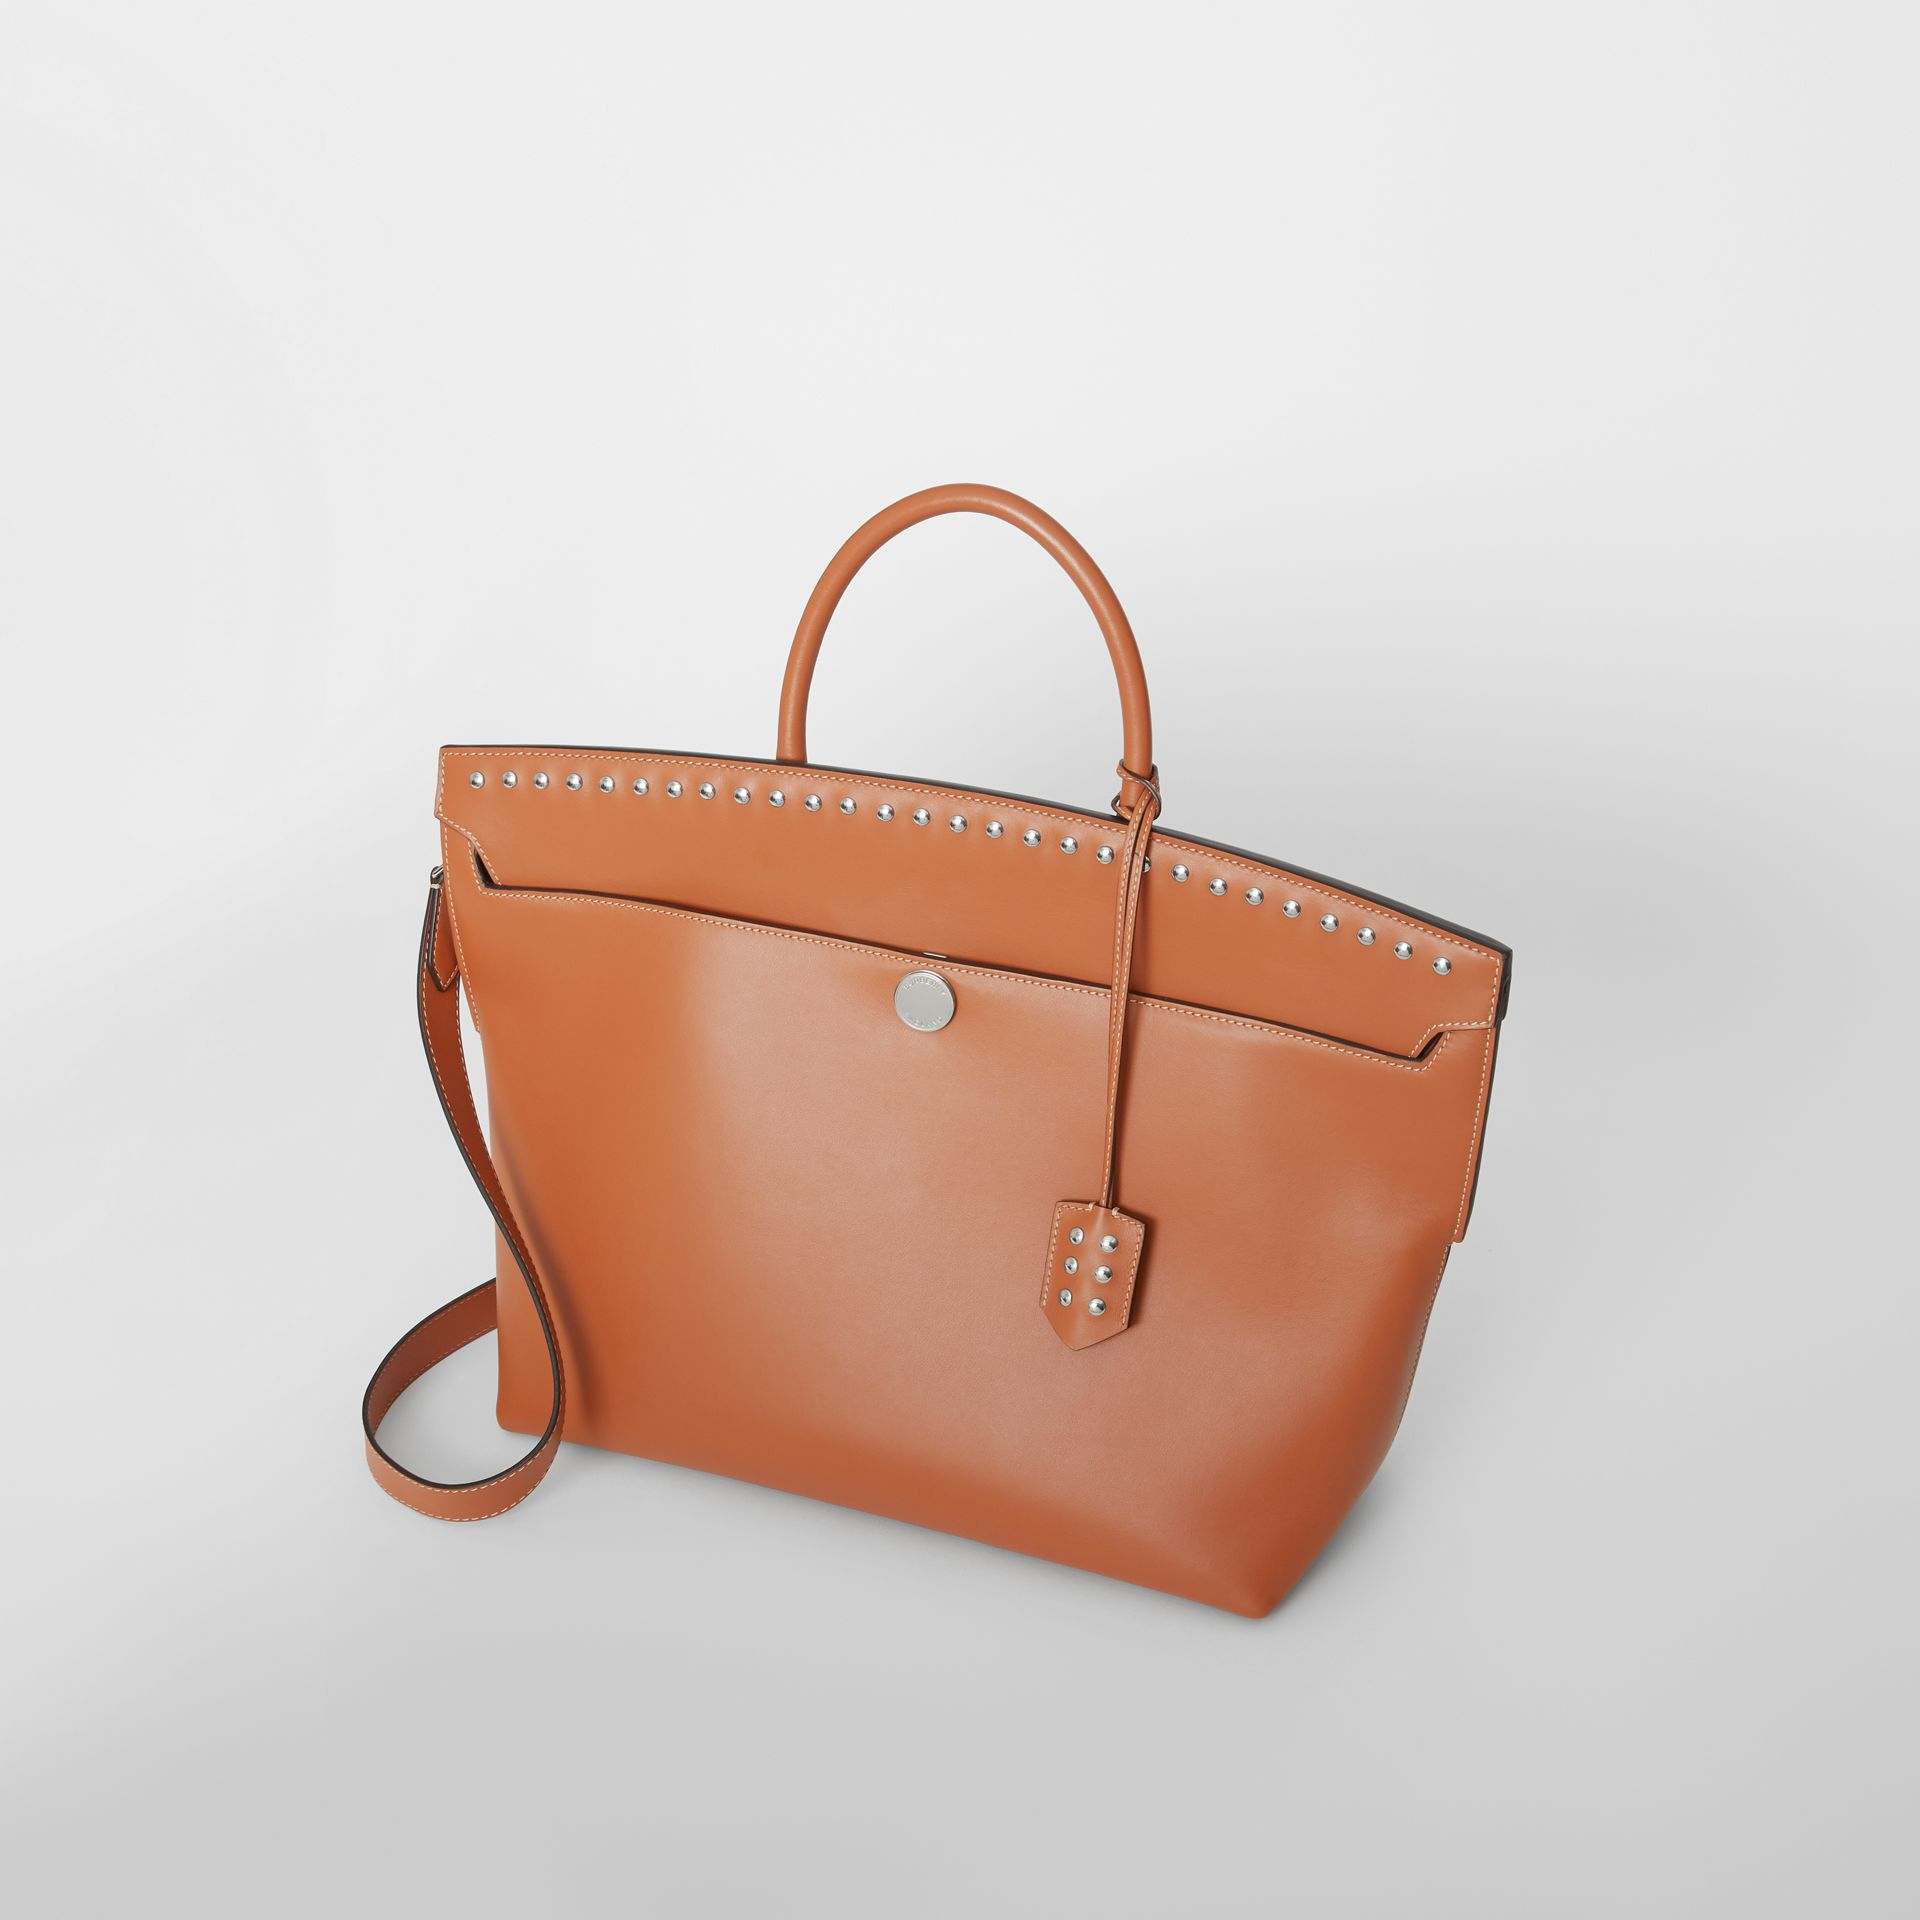 Studded Leather Society Top Handle Bag in Copper Brown - Women | Burberry United Kingdom - gallery image 3